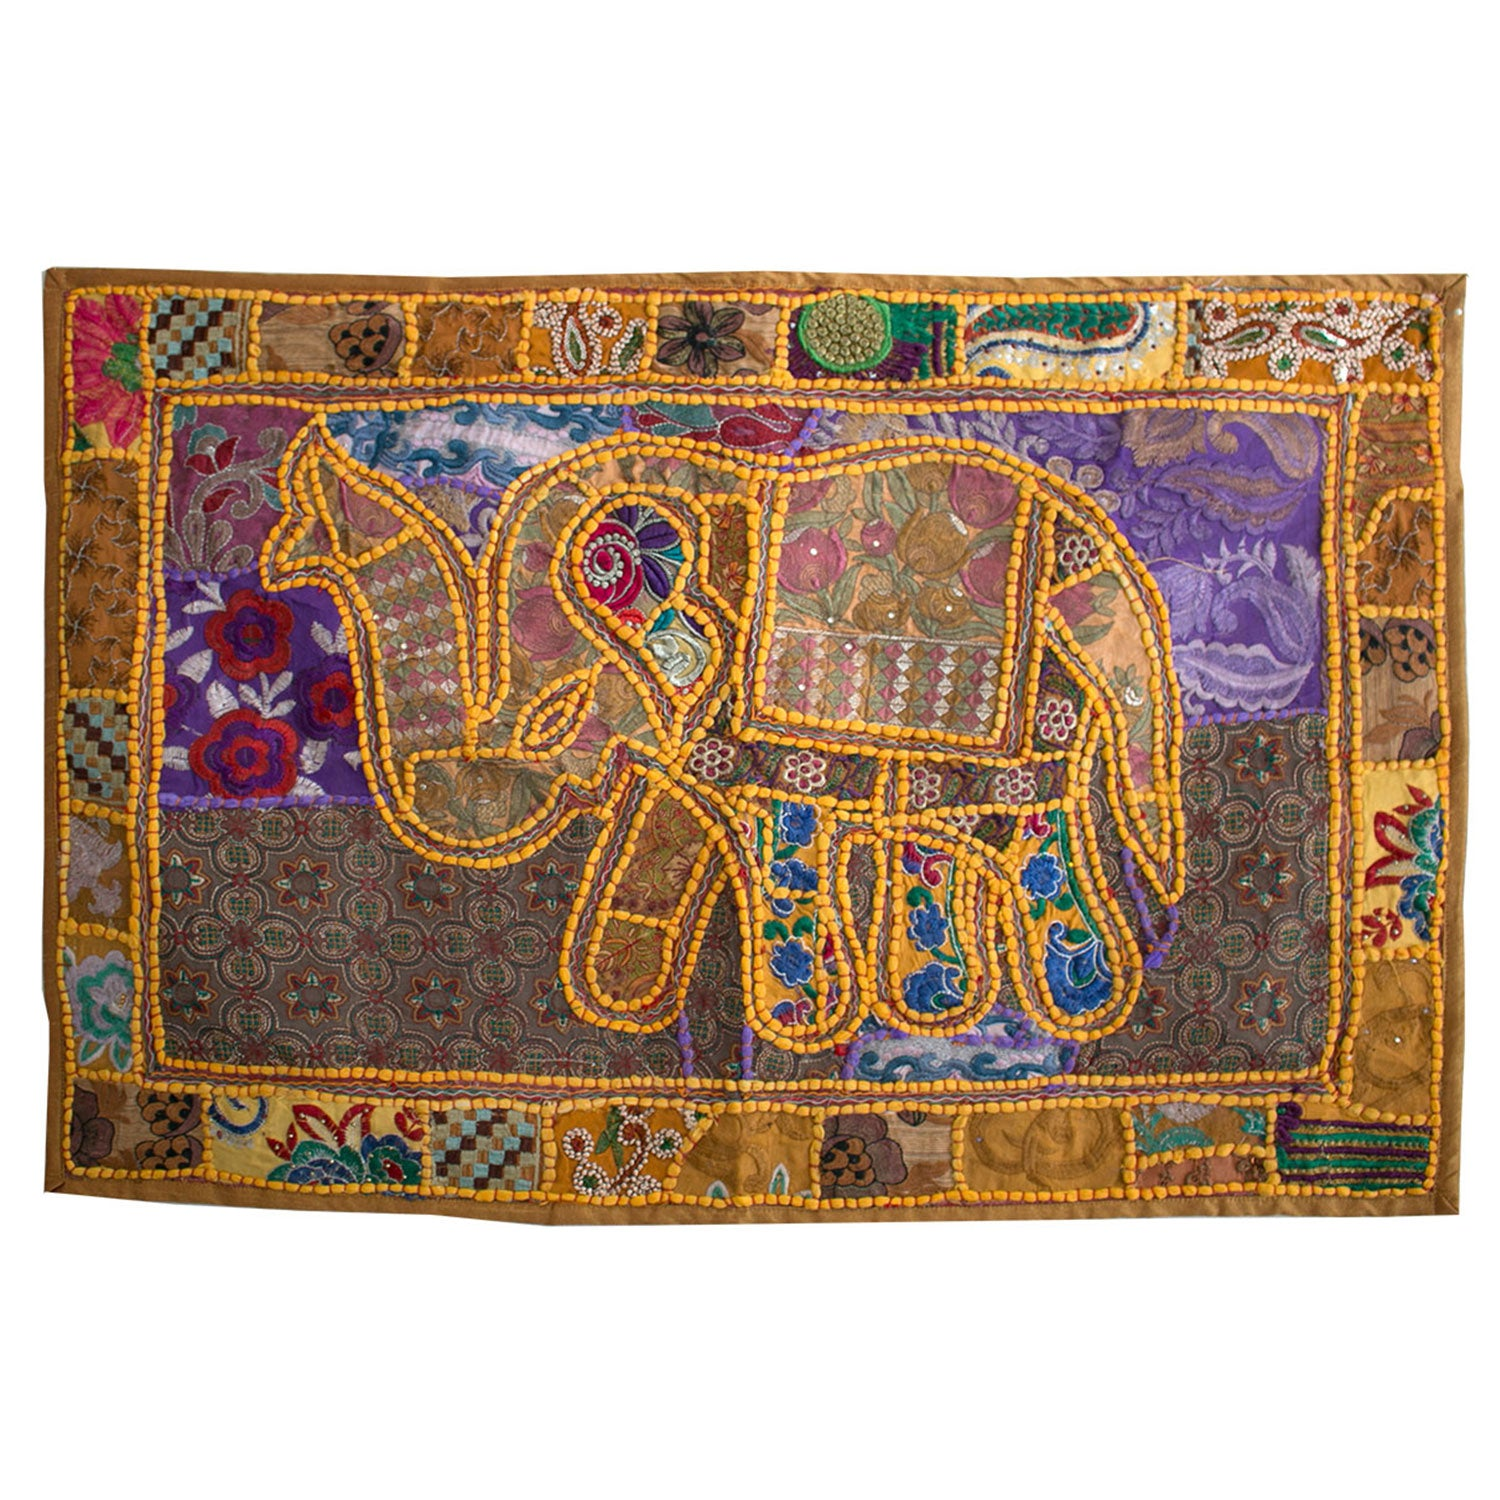 Elephant Tapestry 36 by 24 inches